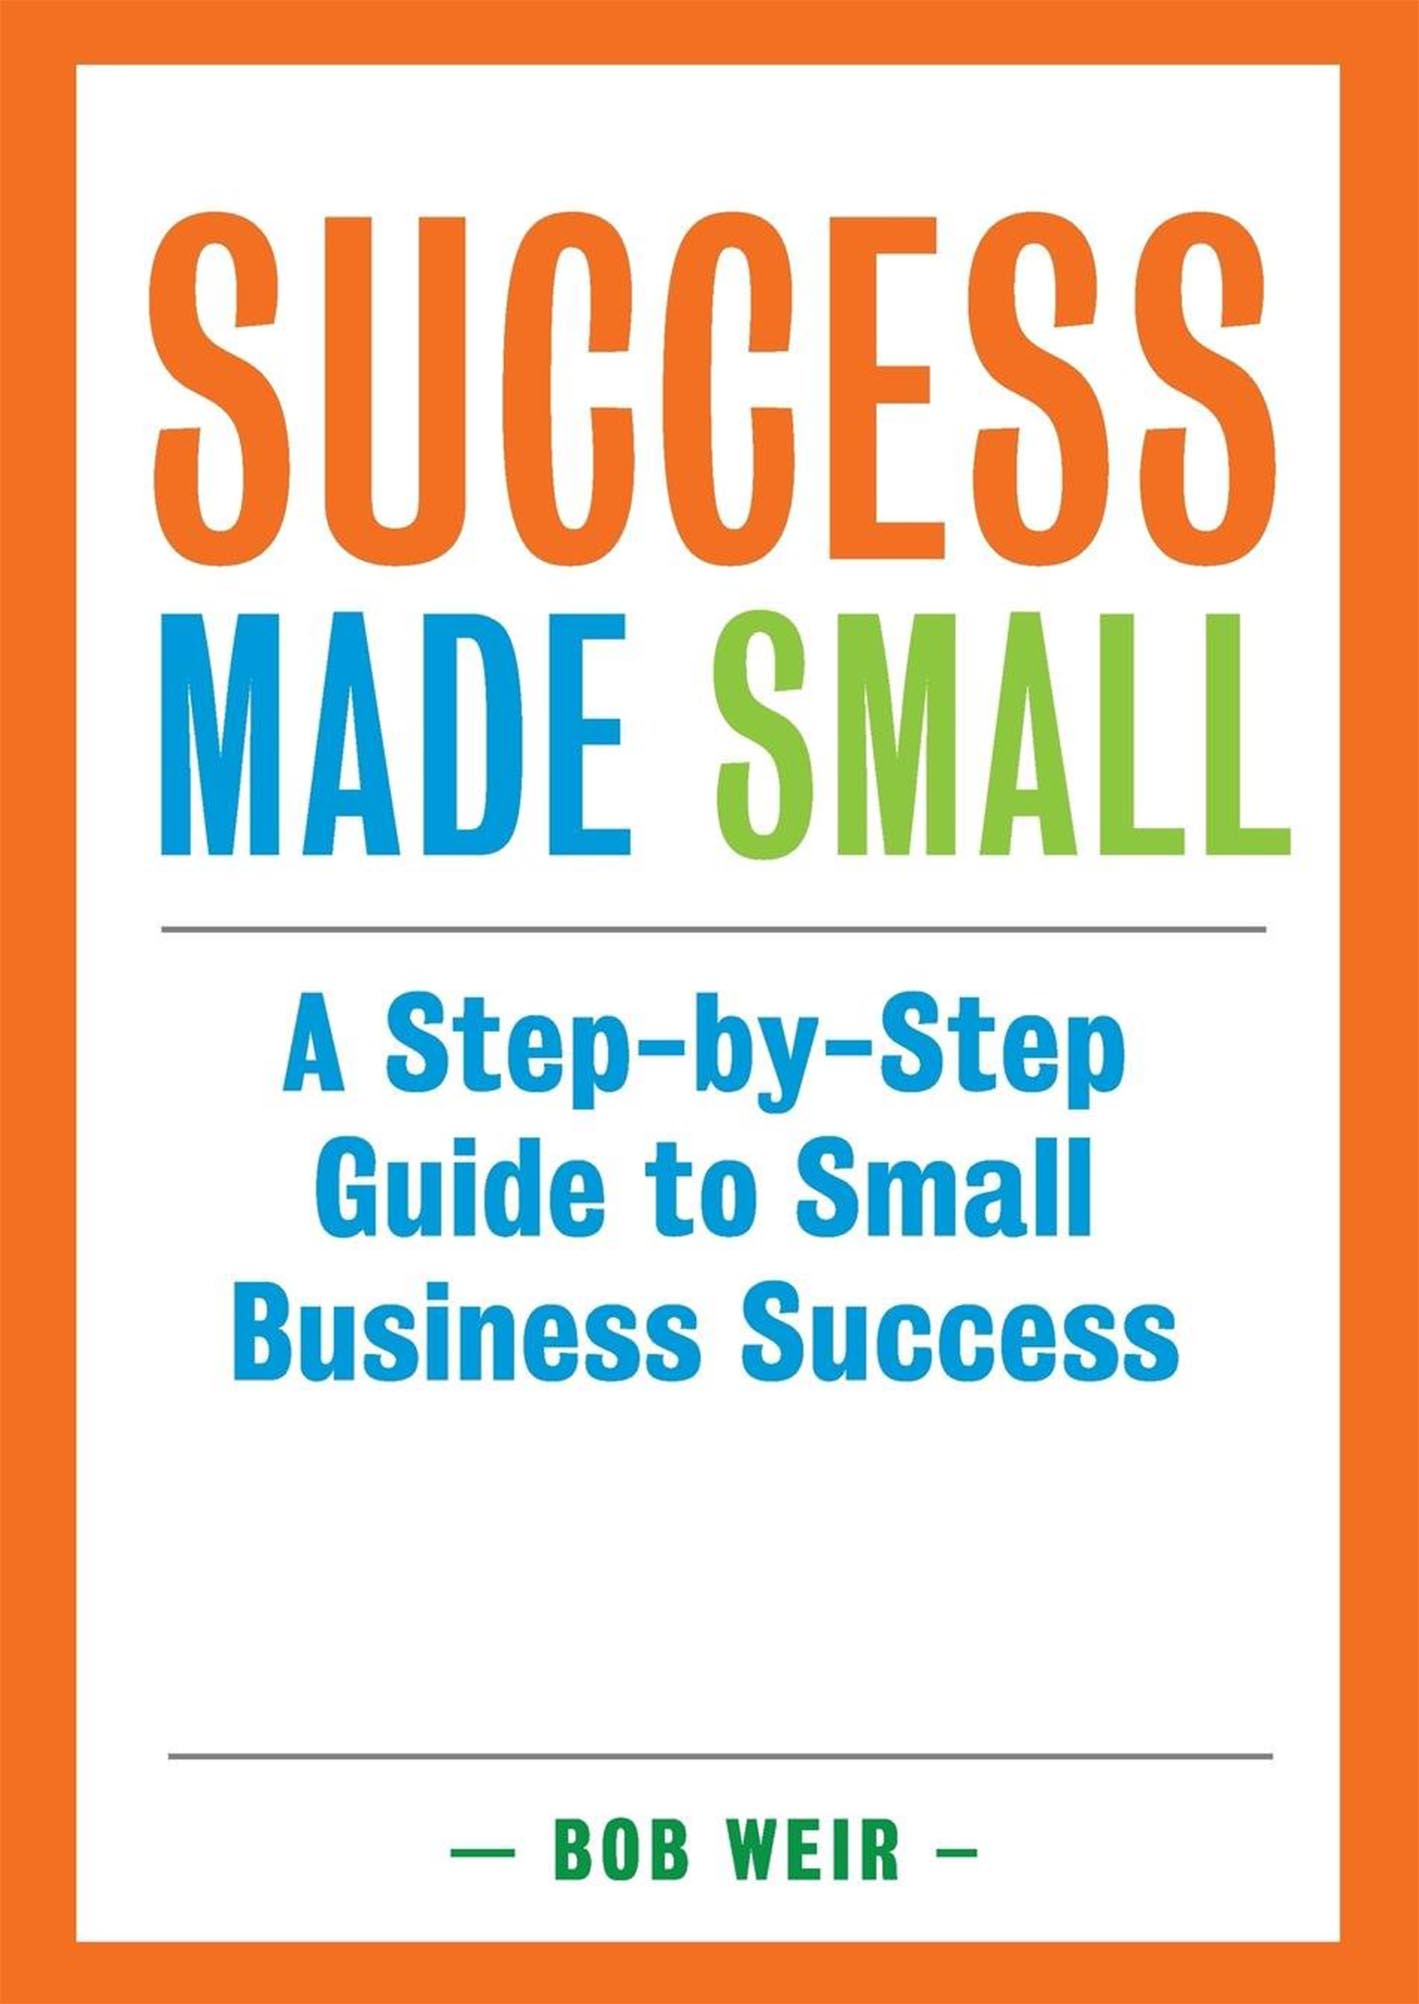 success made small FRONT.jpg